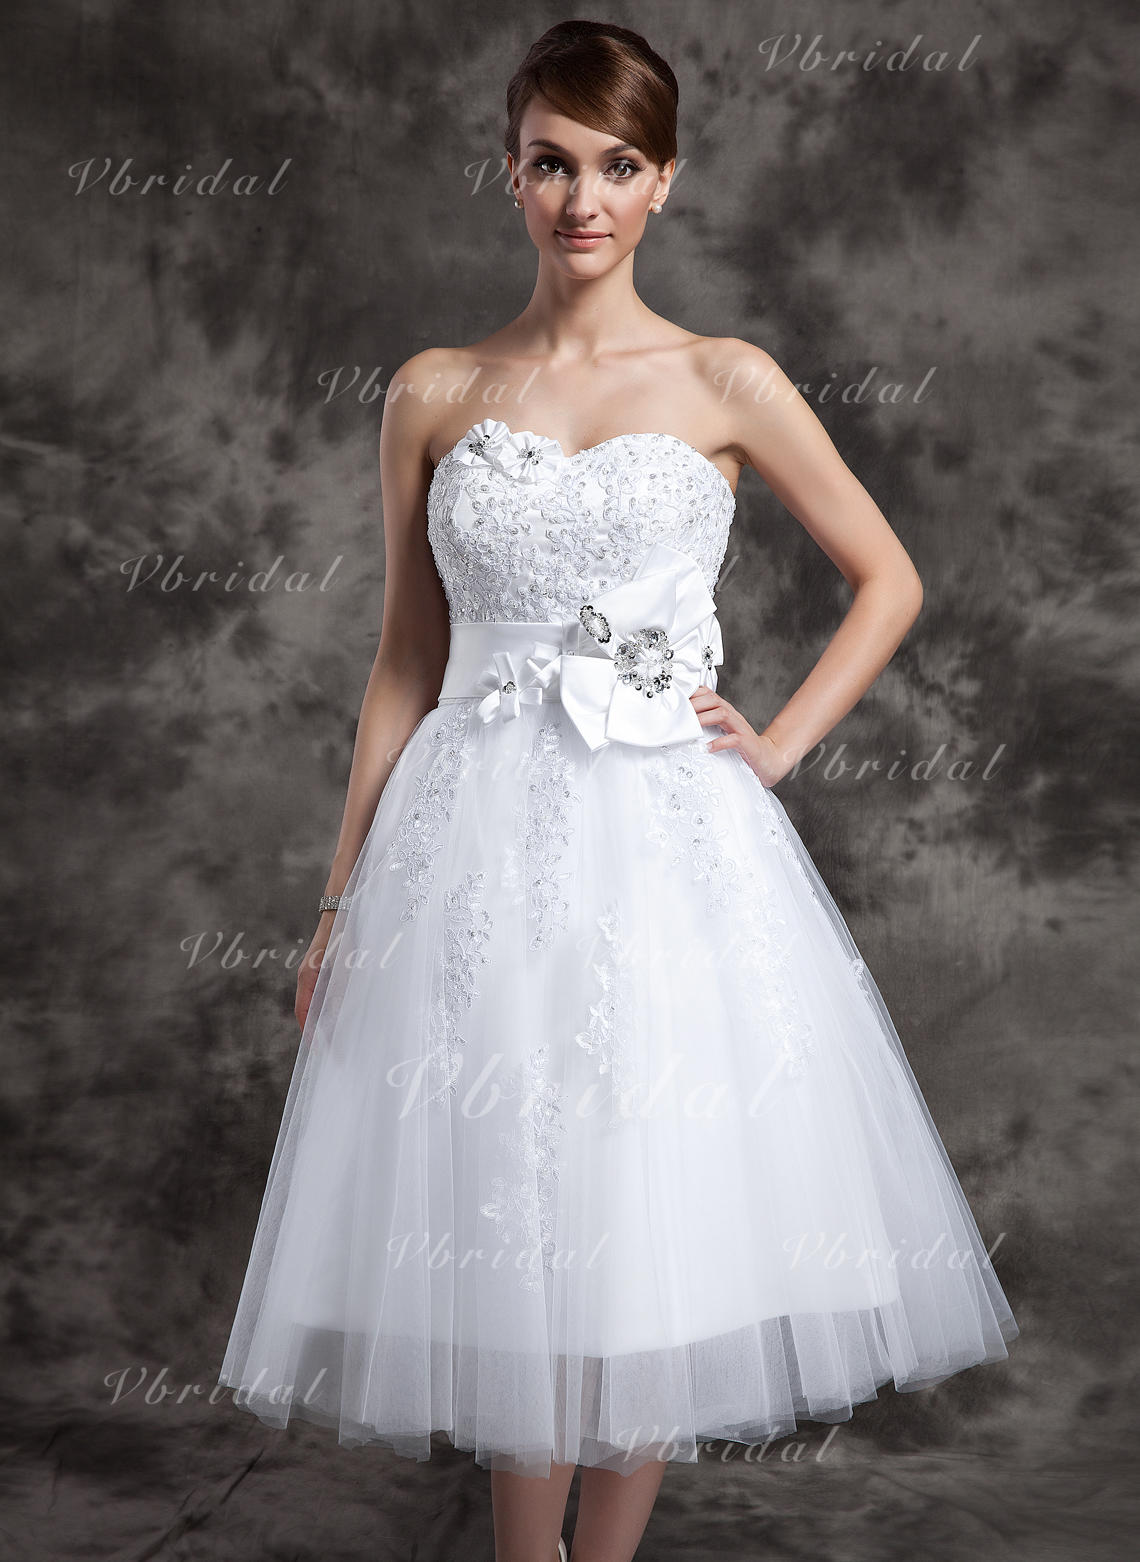 421b162d1fe7 A-Line/Princess Sweetheart Tea-Length Tulle Wedding Dress With Lace Beading  Flower(s) (002024082)